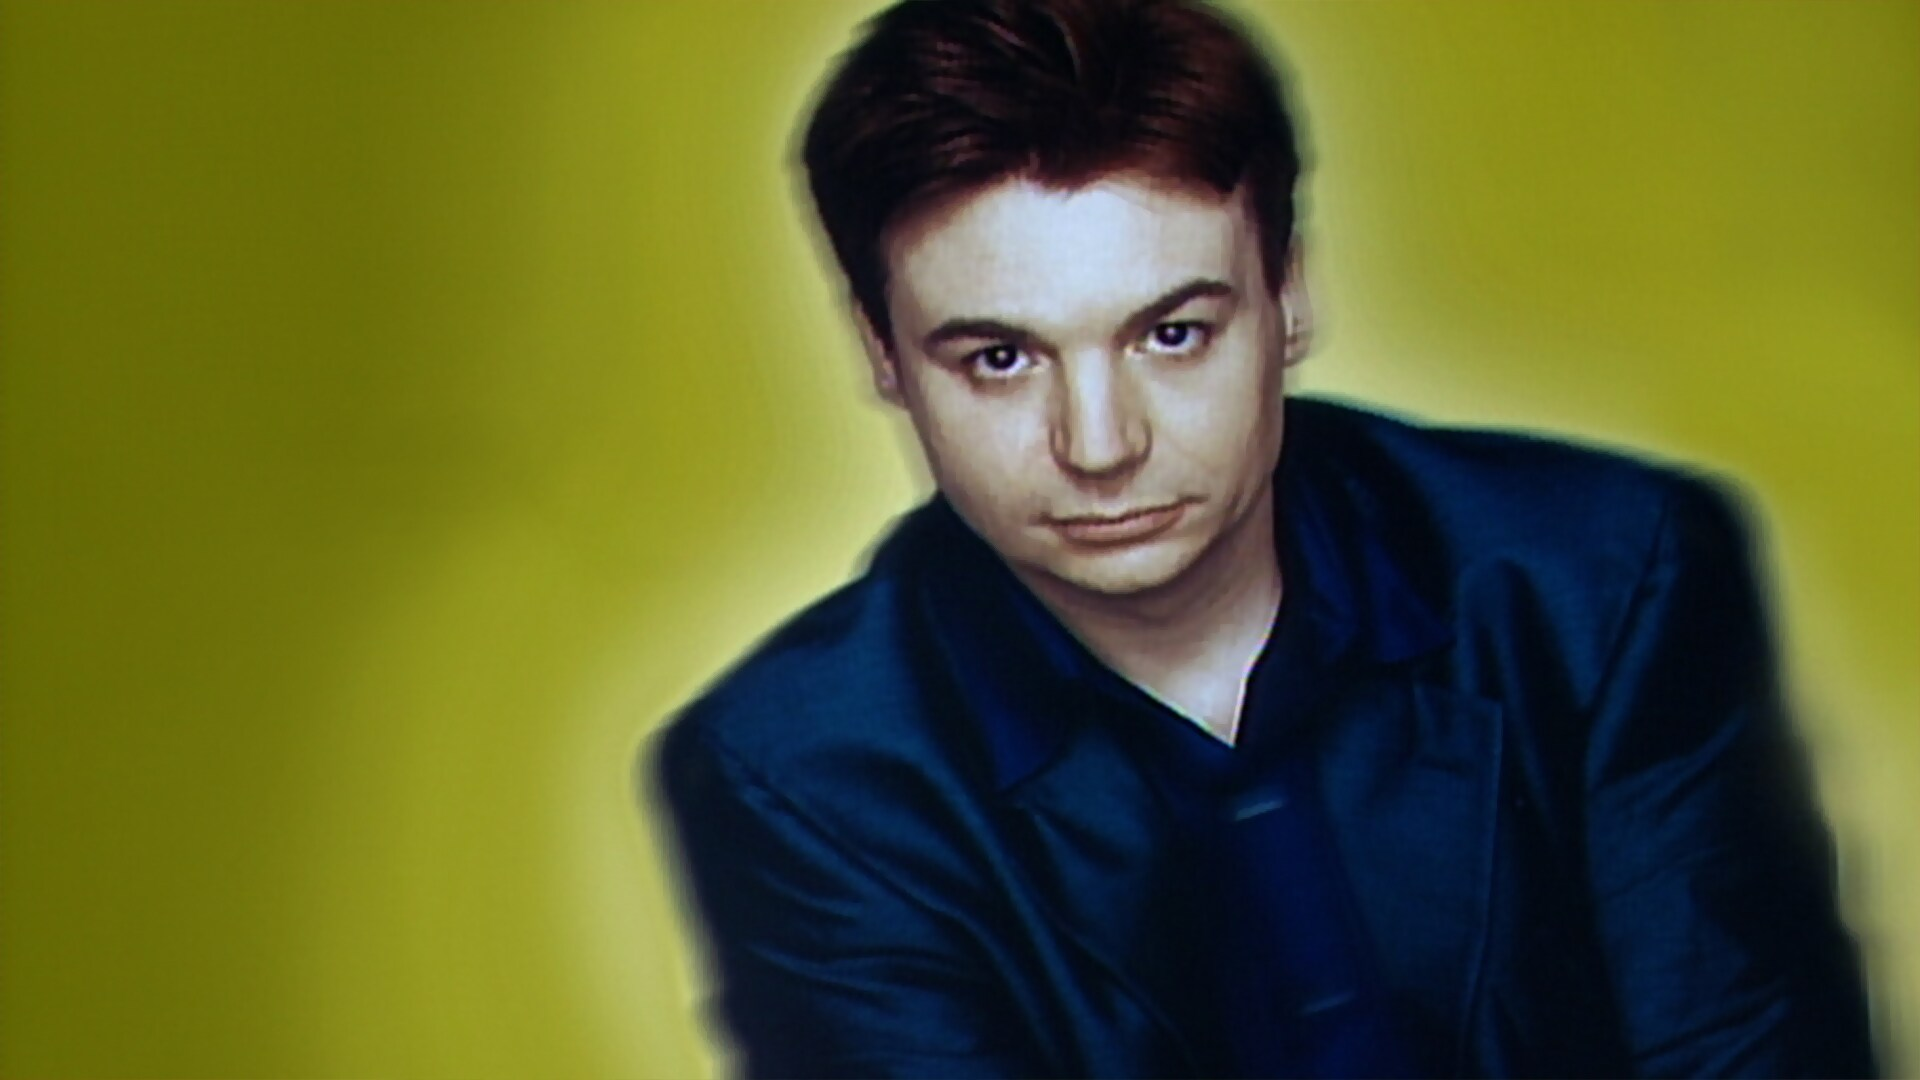 Mike Myers: March 22, 1997